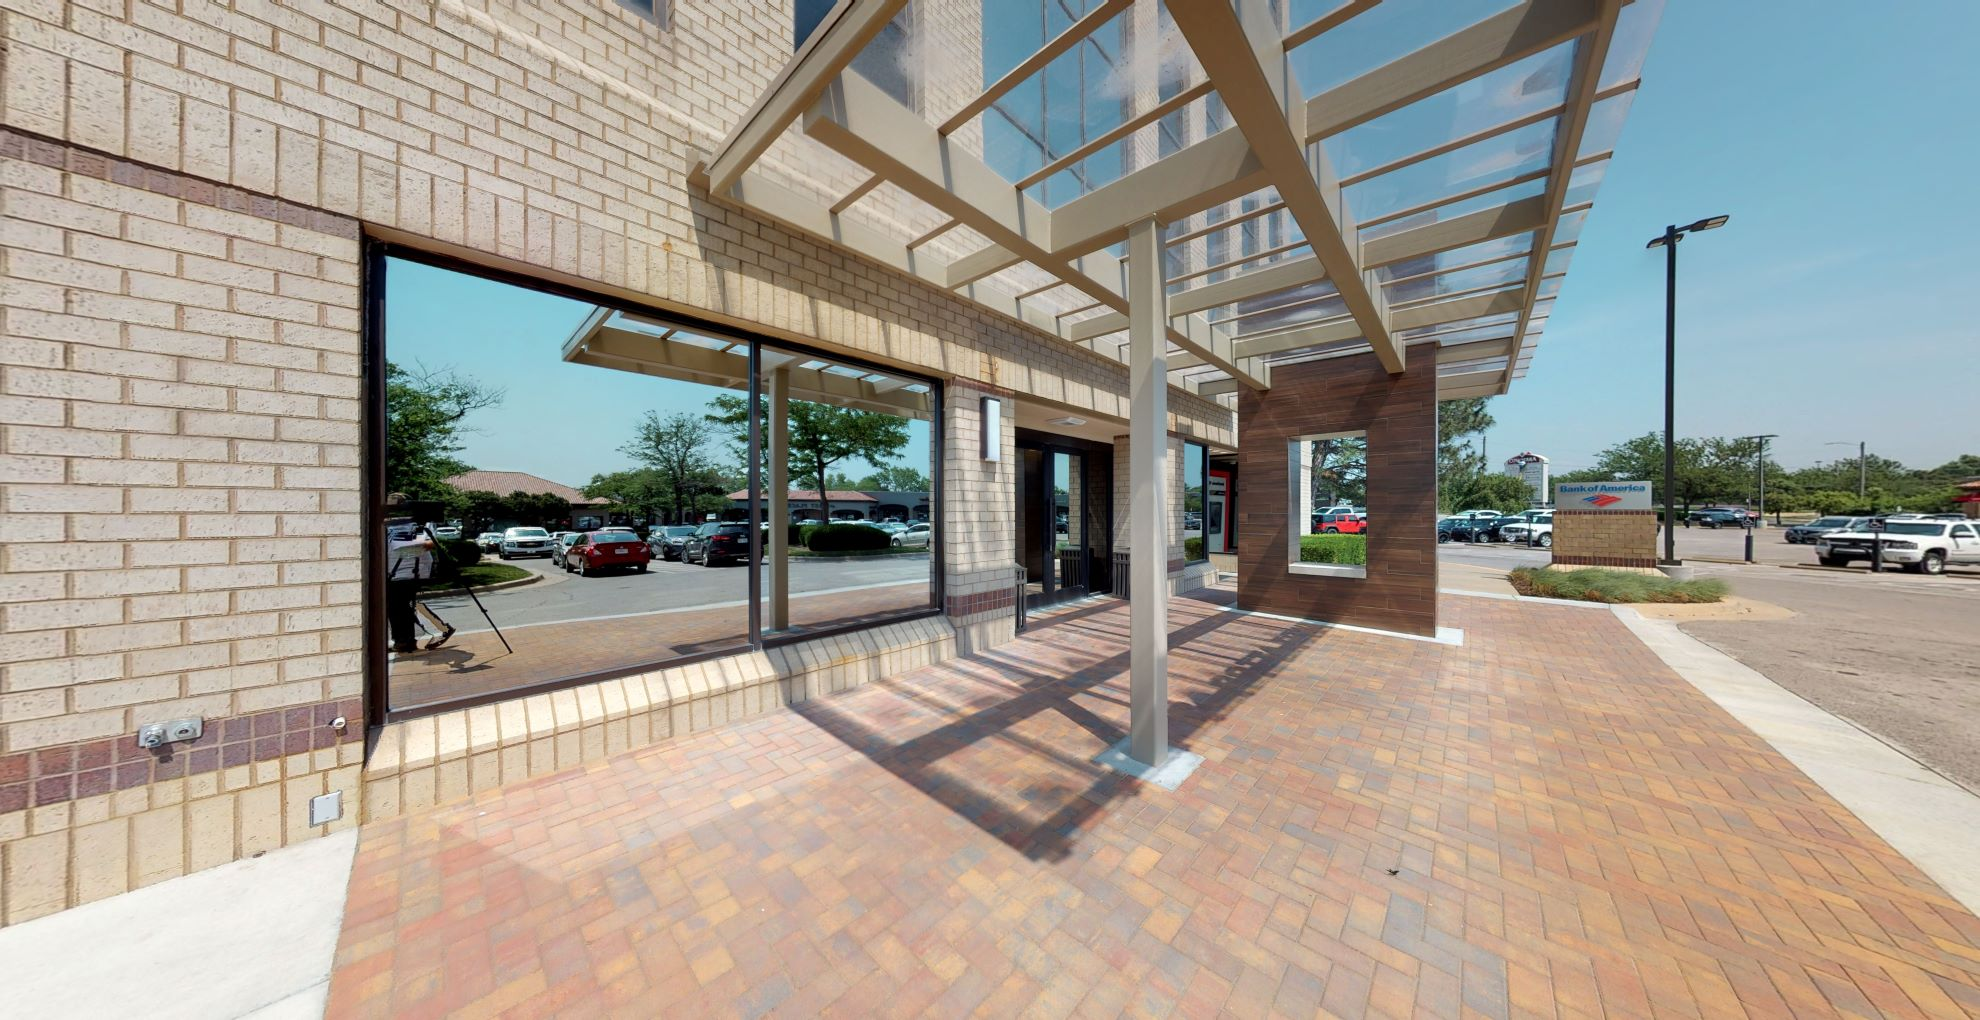 Bank of America financial center with walk-up ATM | 2959 N Rock Rd, Wichita, KS 67226